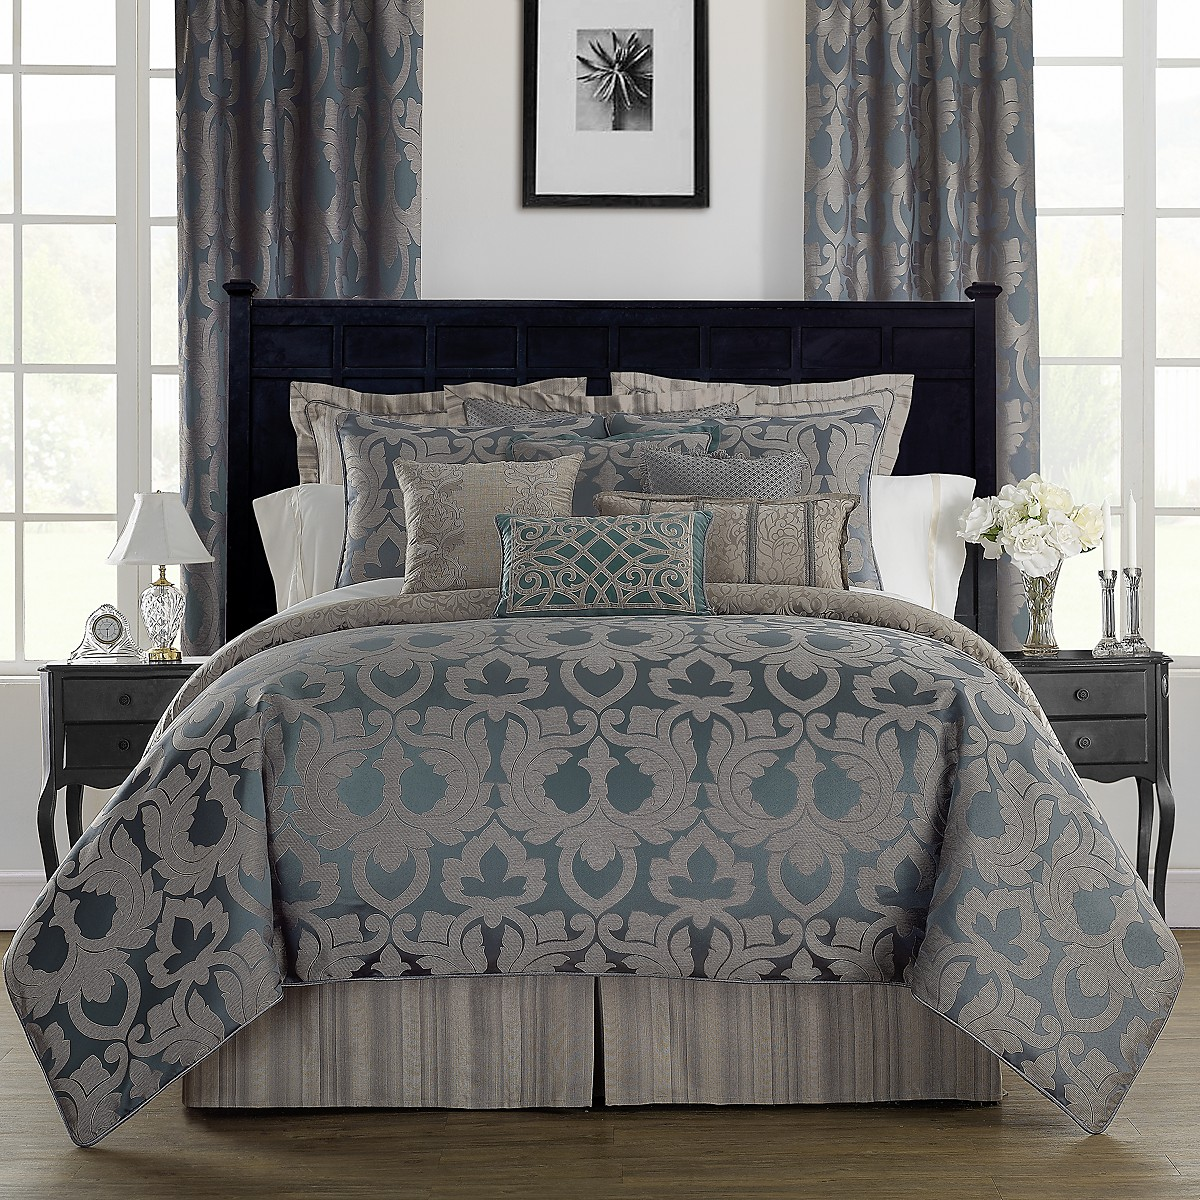 nordstrom sham brushstroke twin comforters comforter spade shams set of bedroom york garden kate image street wonderful chambray duvet bedding cover new covers spring top bloomingdales saturday diagonal